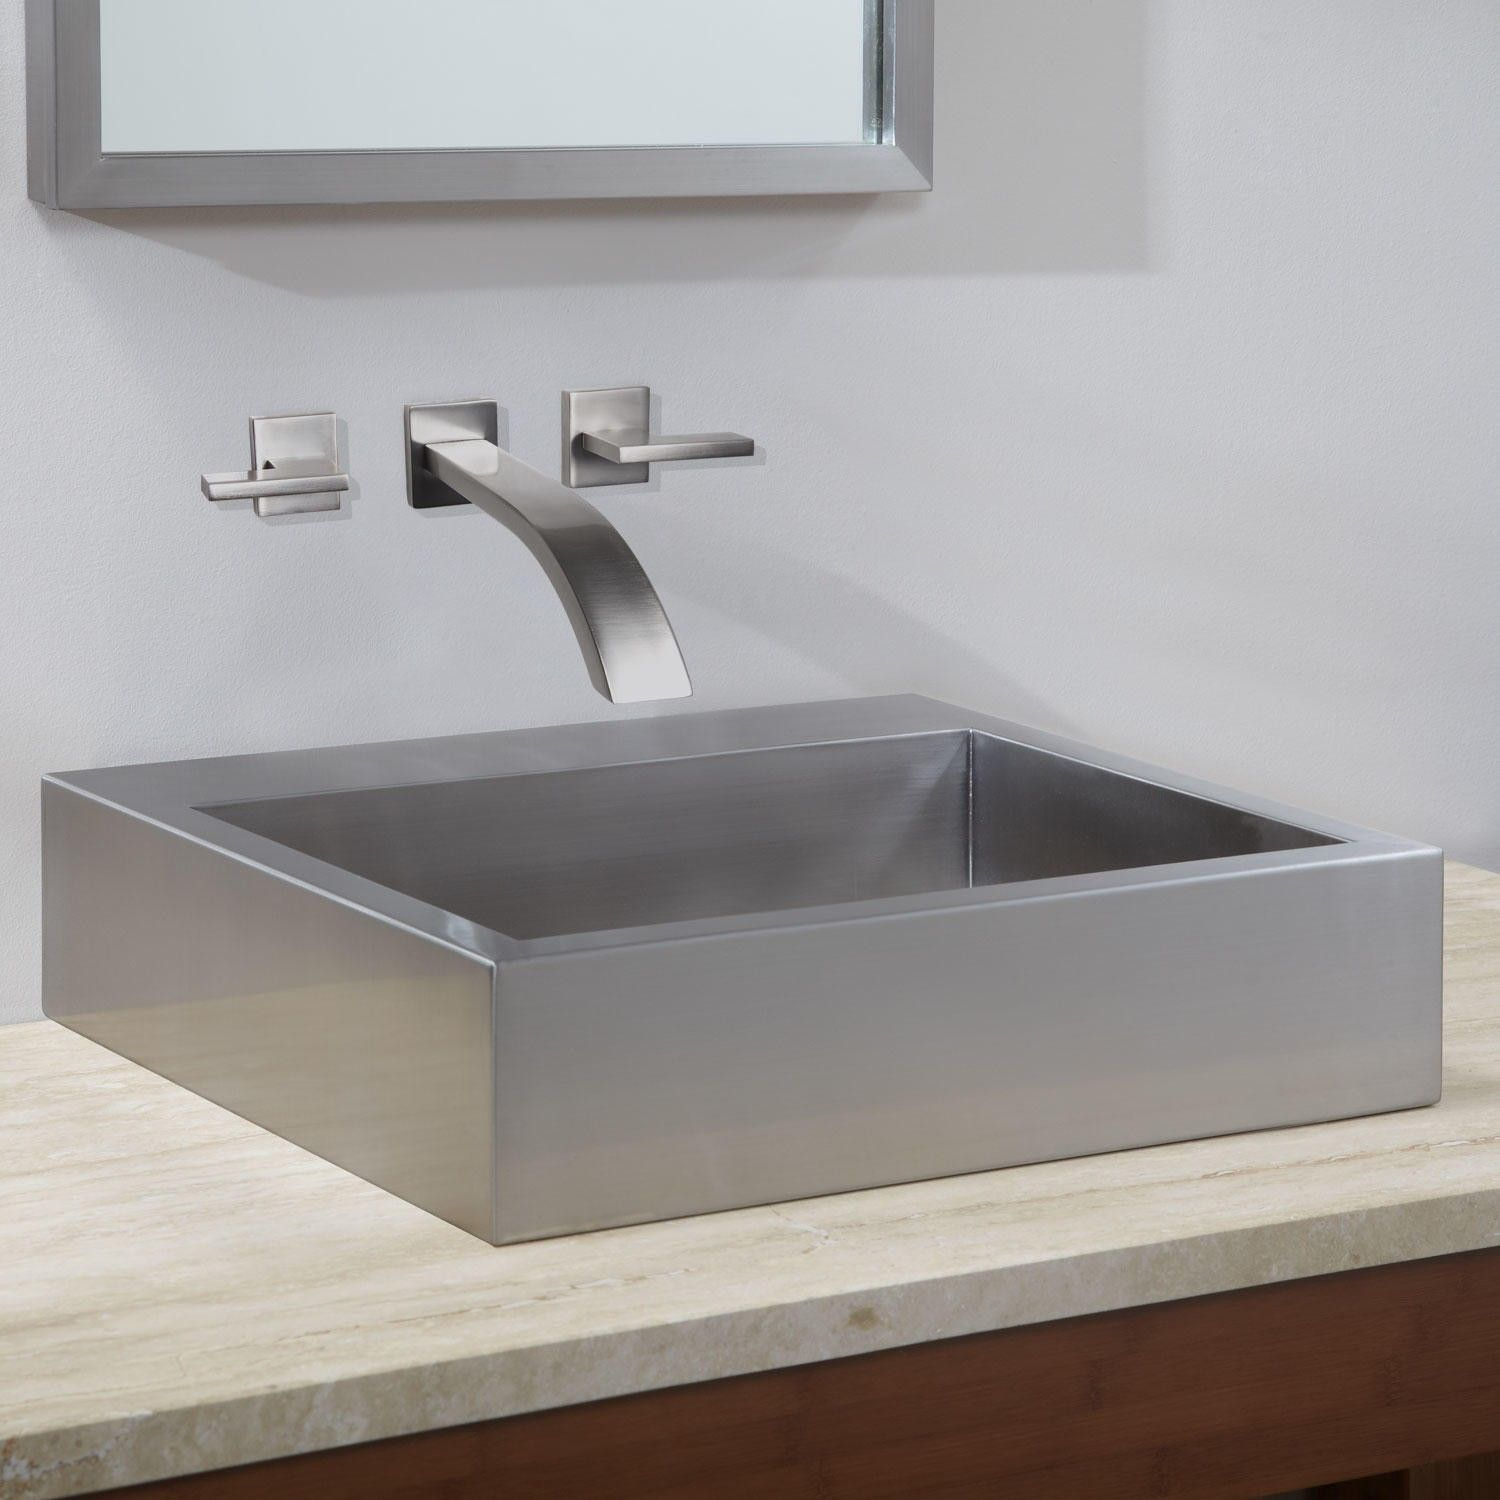 20 Clarendon Stainless Steel Square Vessel Sink Simple Bathroom